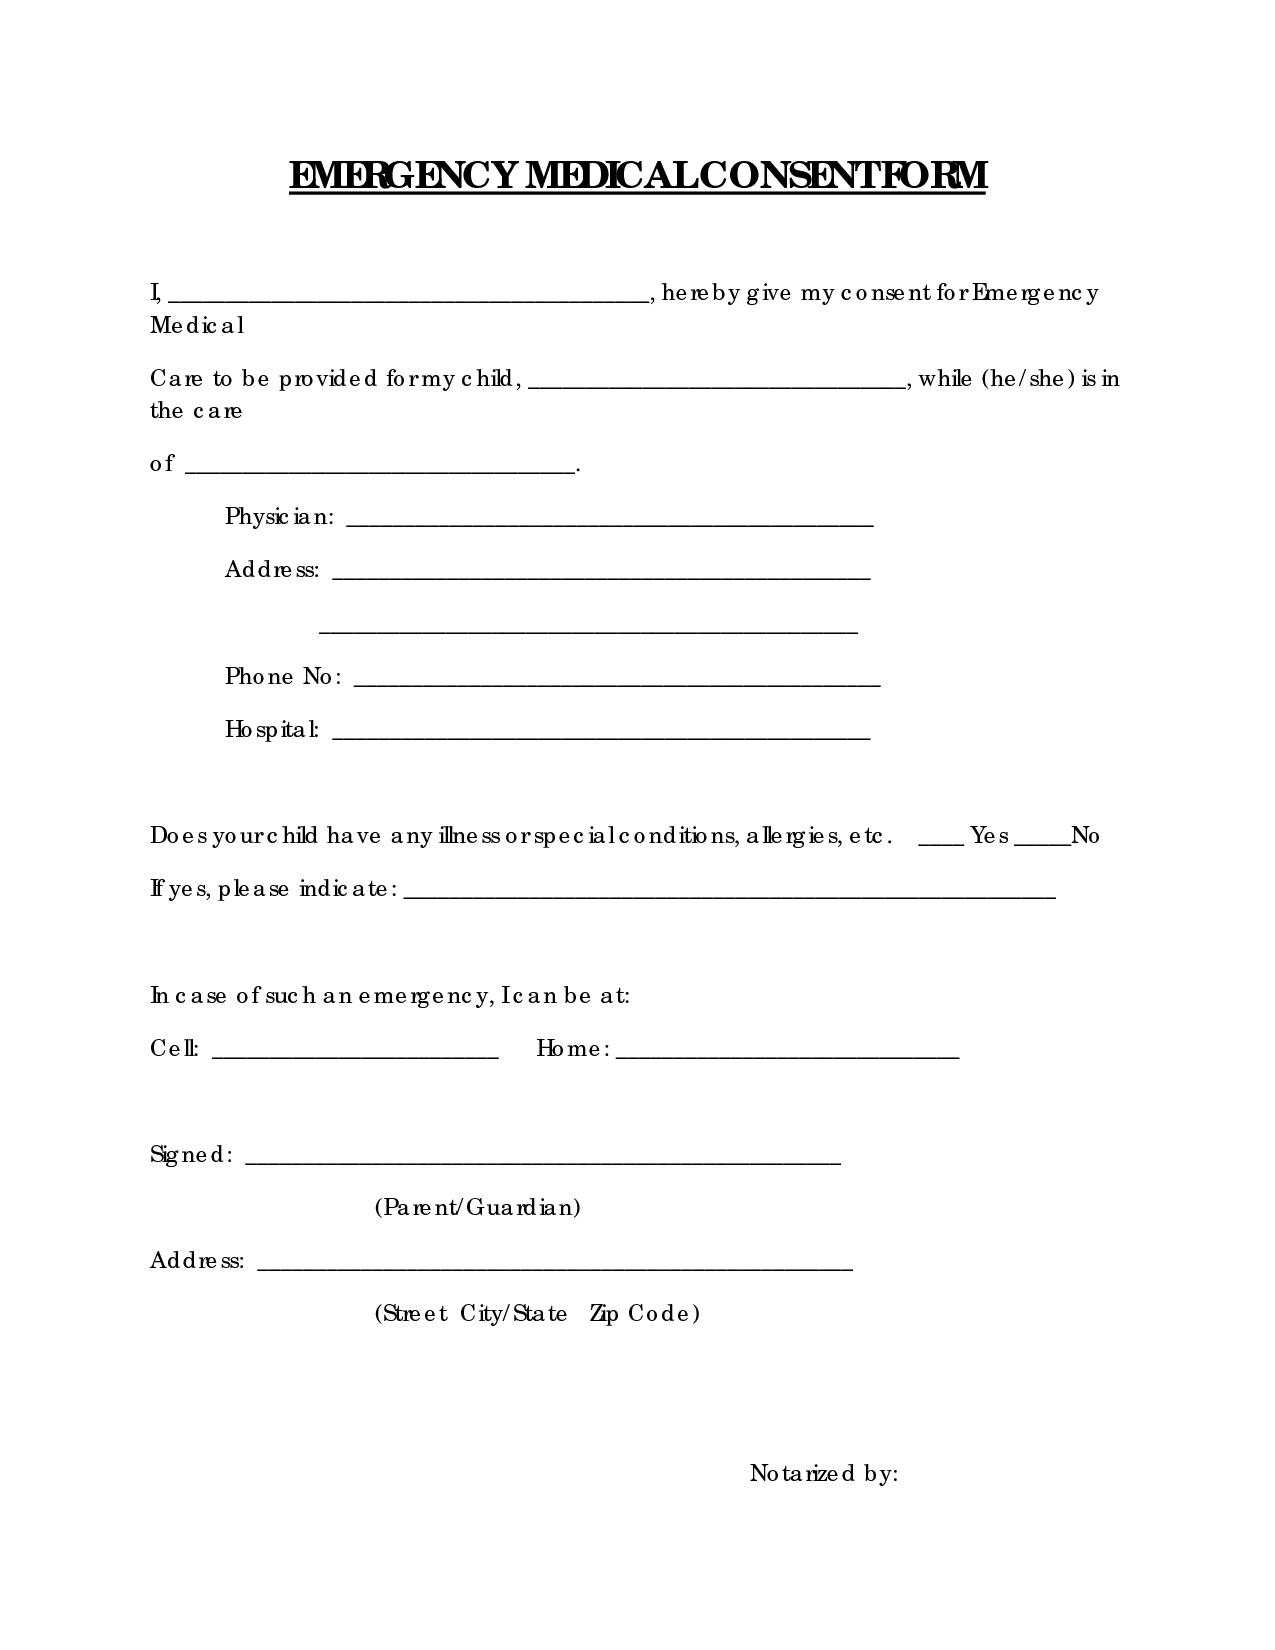 Free Printable Medical Consent Form | Emergency Medical Consent Form - Free Printable Medical Forms Kit